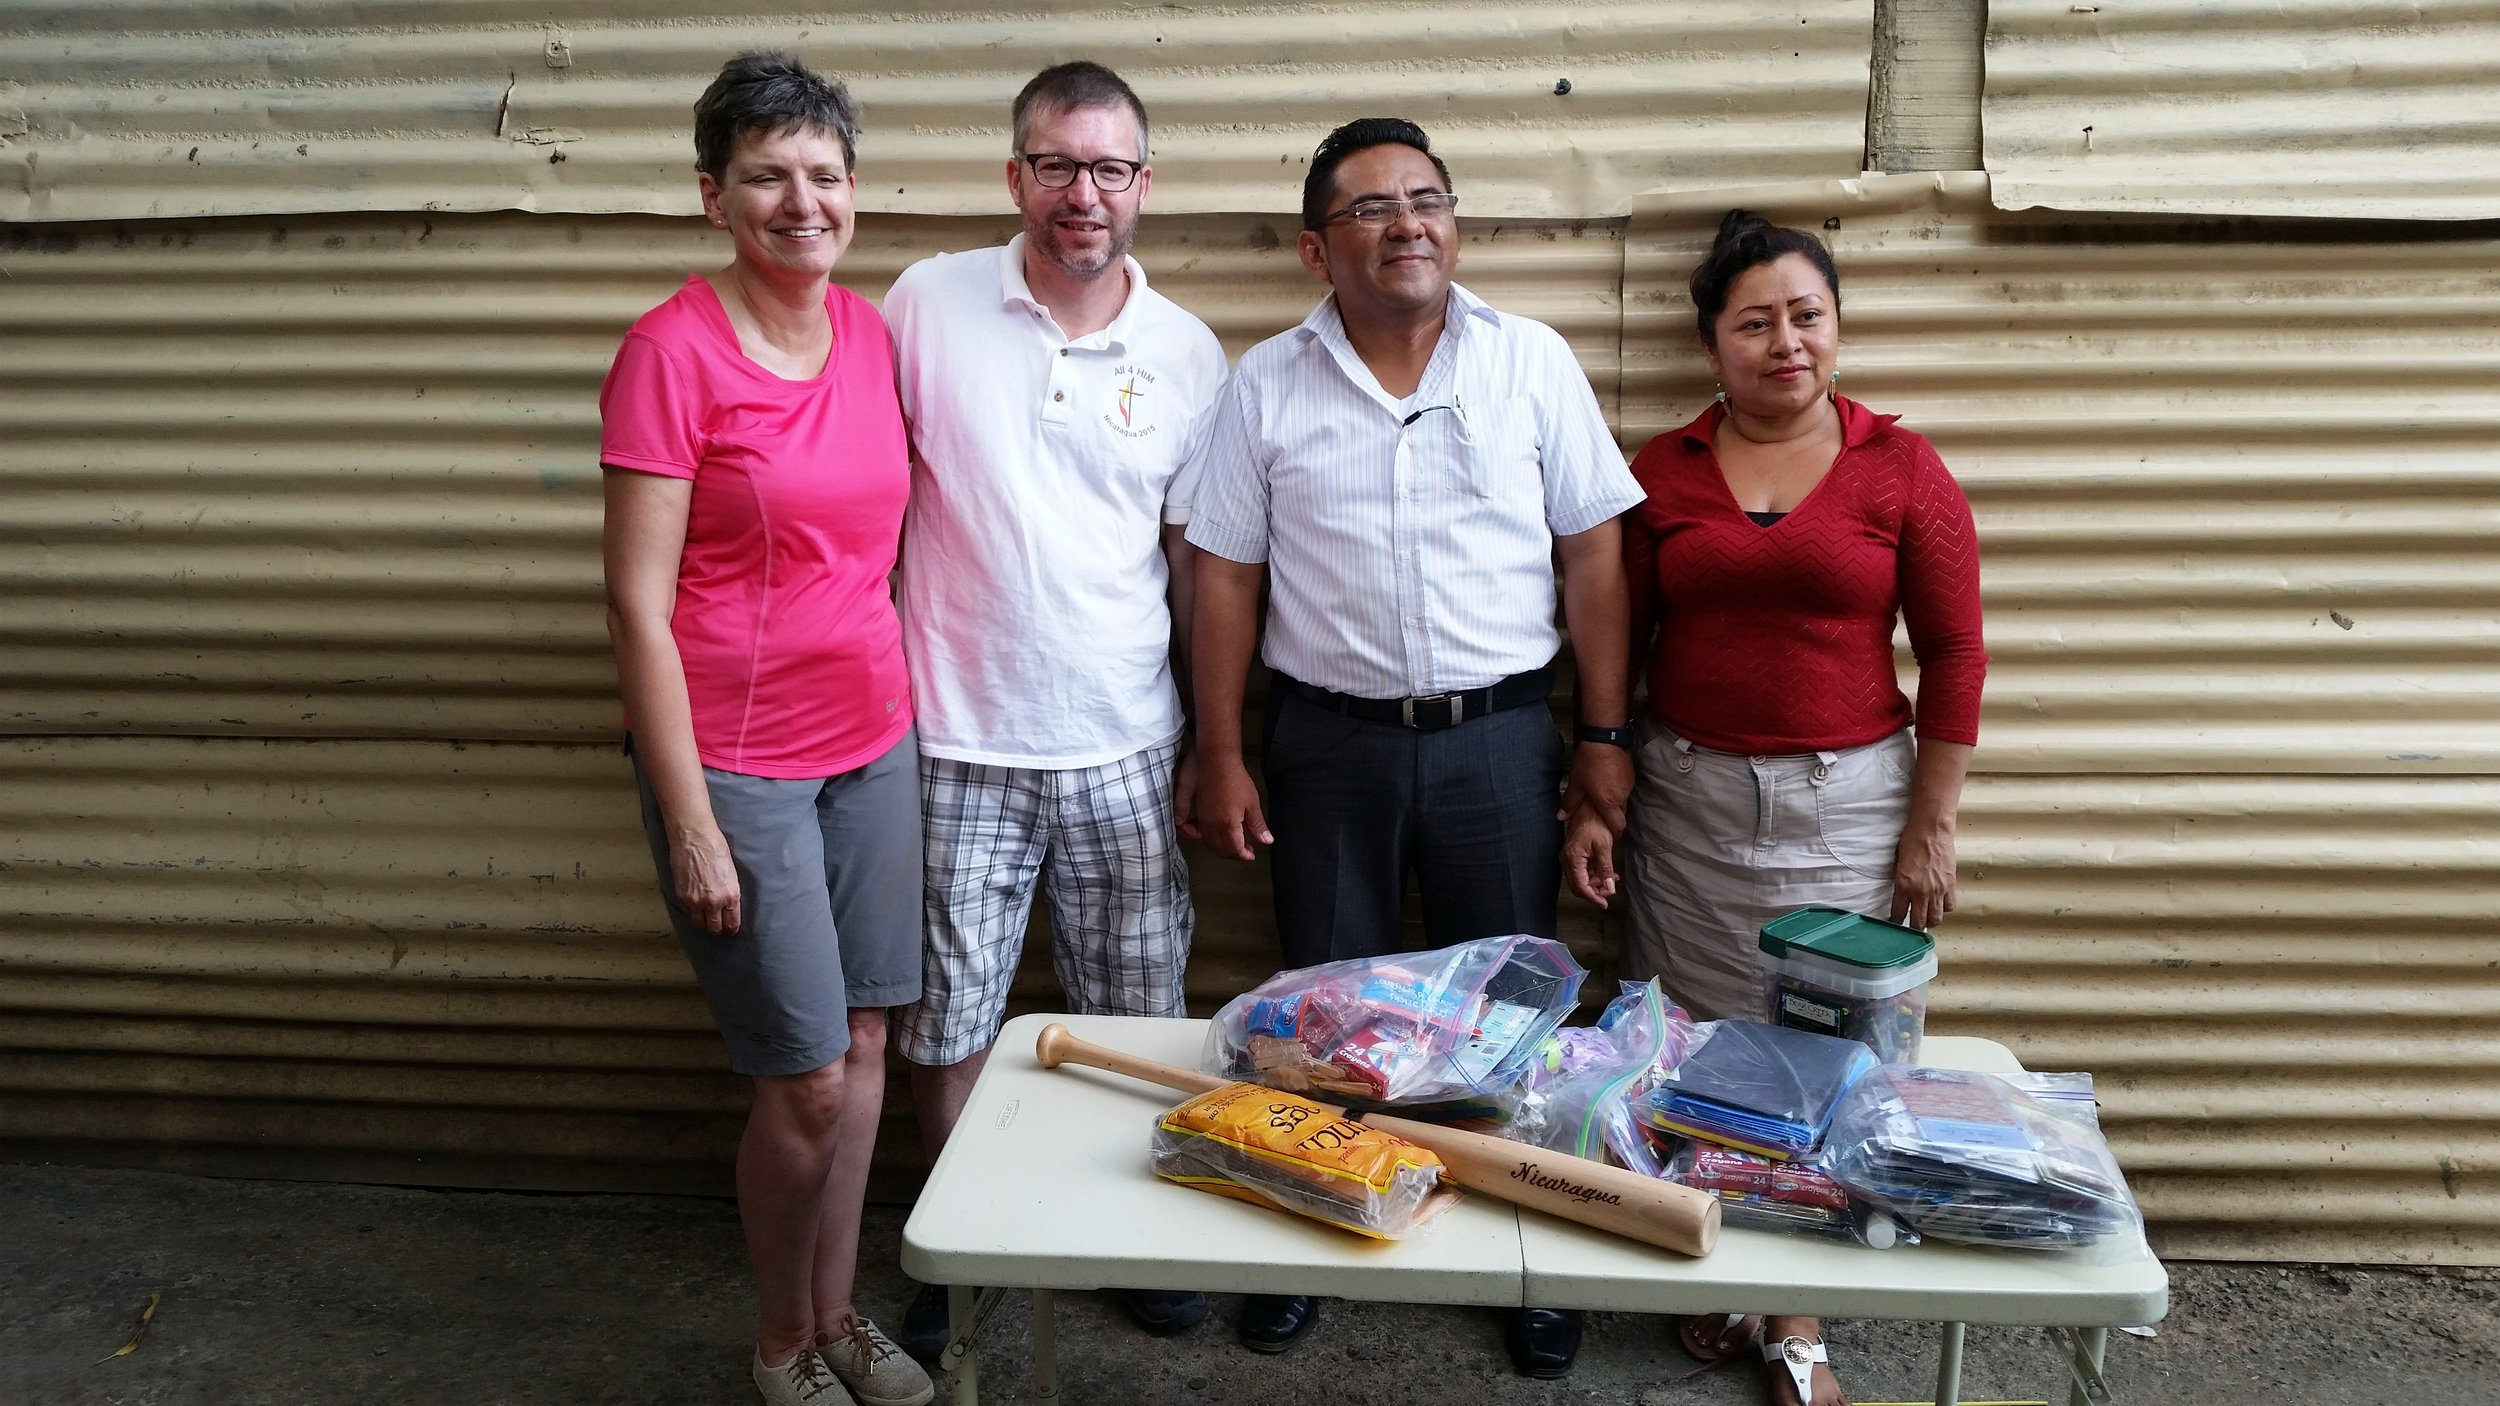 P  astor Ian and Gwenna pose with Pastor Wilmer and his wife with some items we donated to their school today.